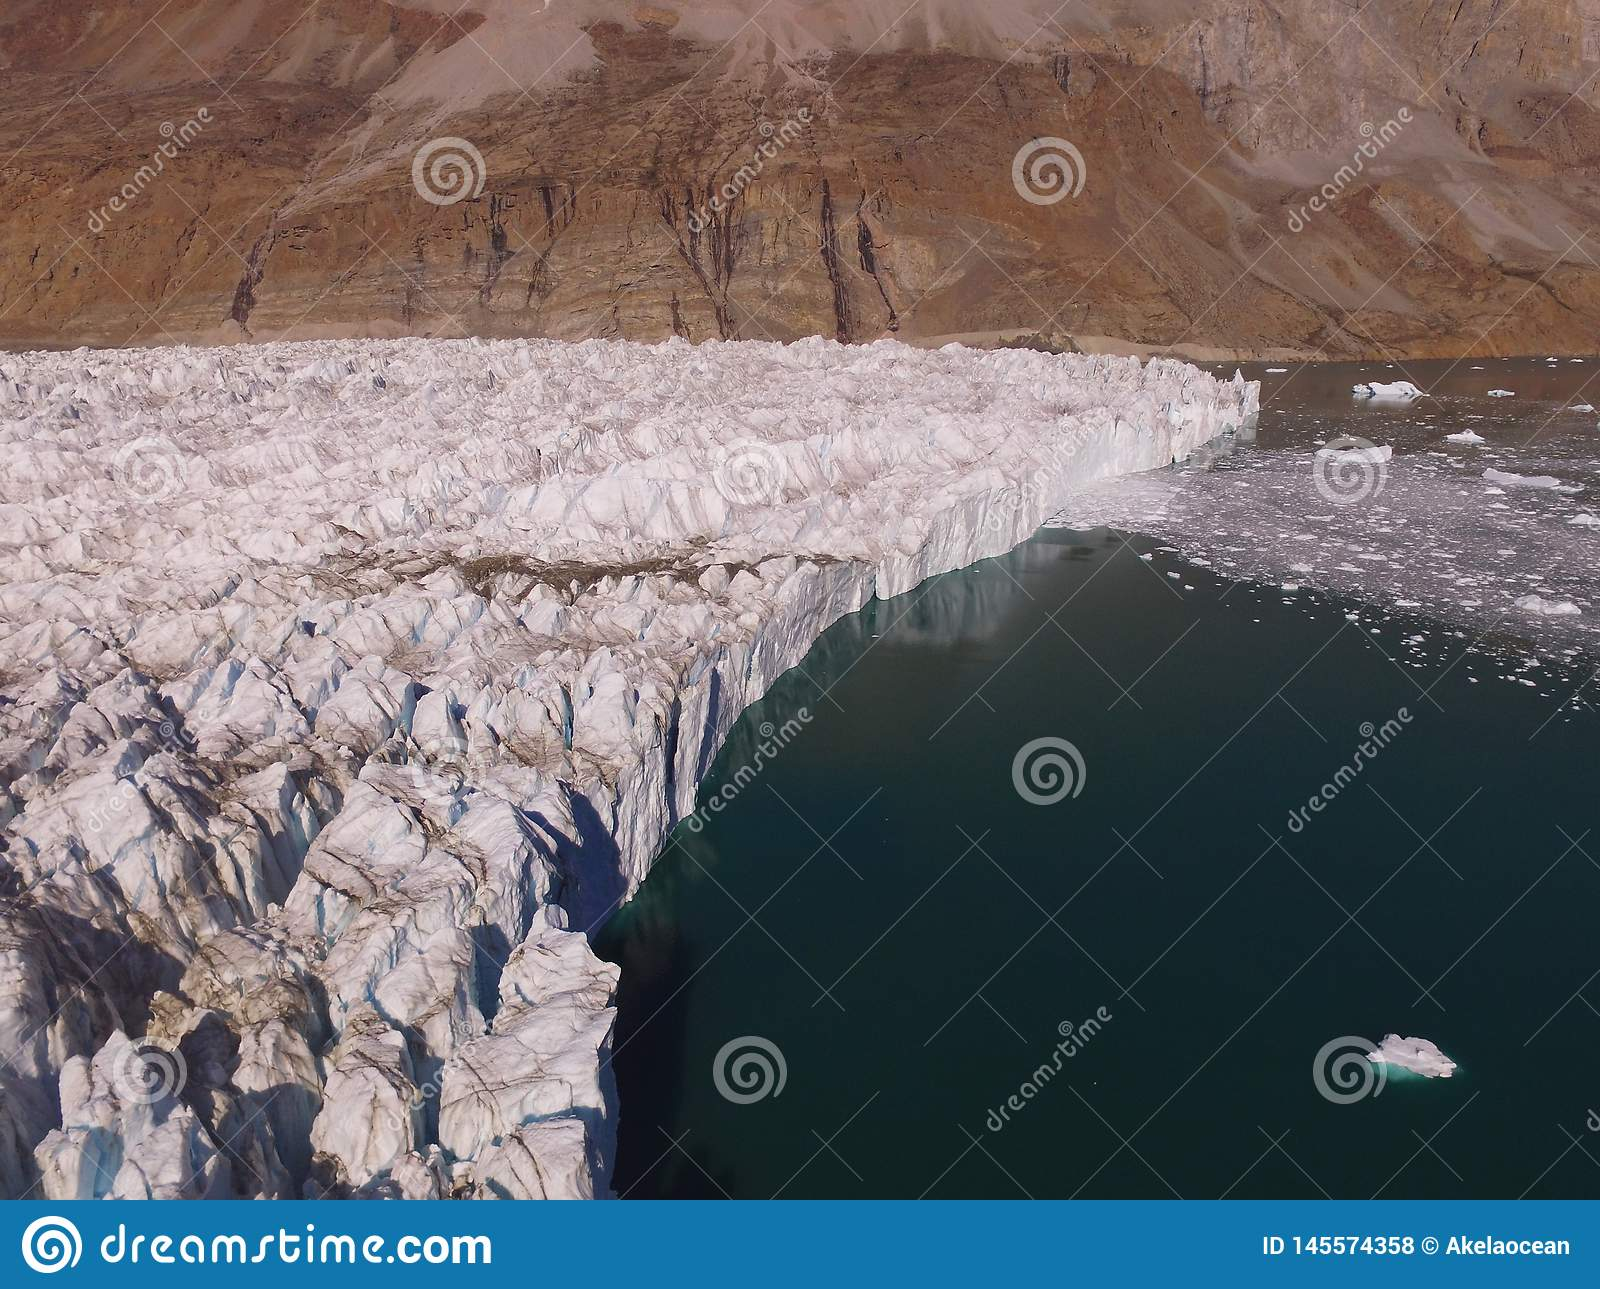 Oblique drone aerial image of the terminus of a glacier in a fjord in northeast Greenland